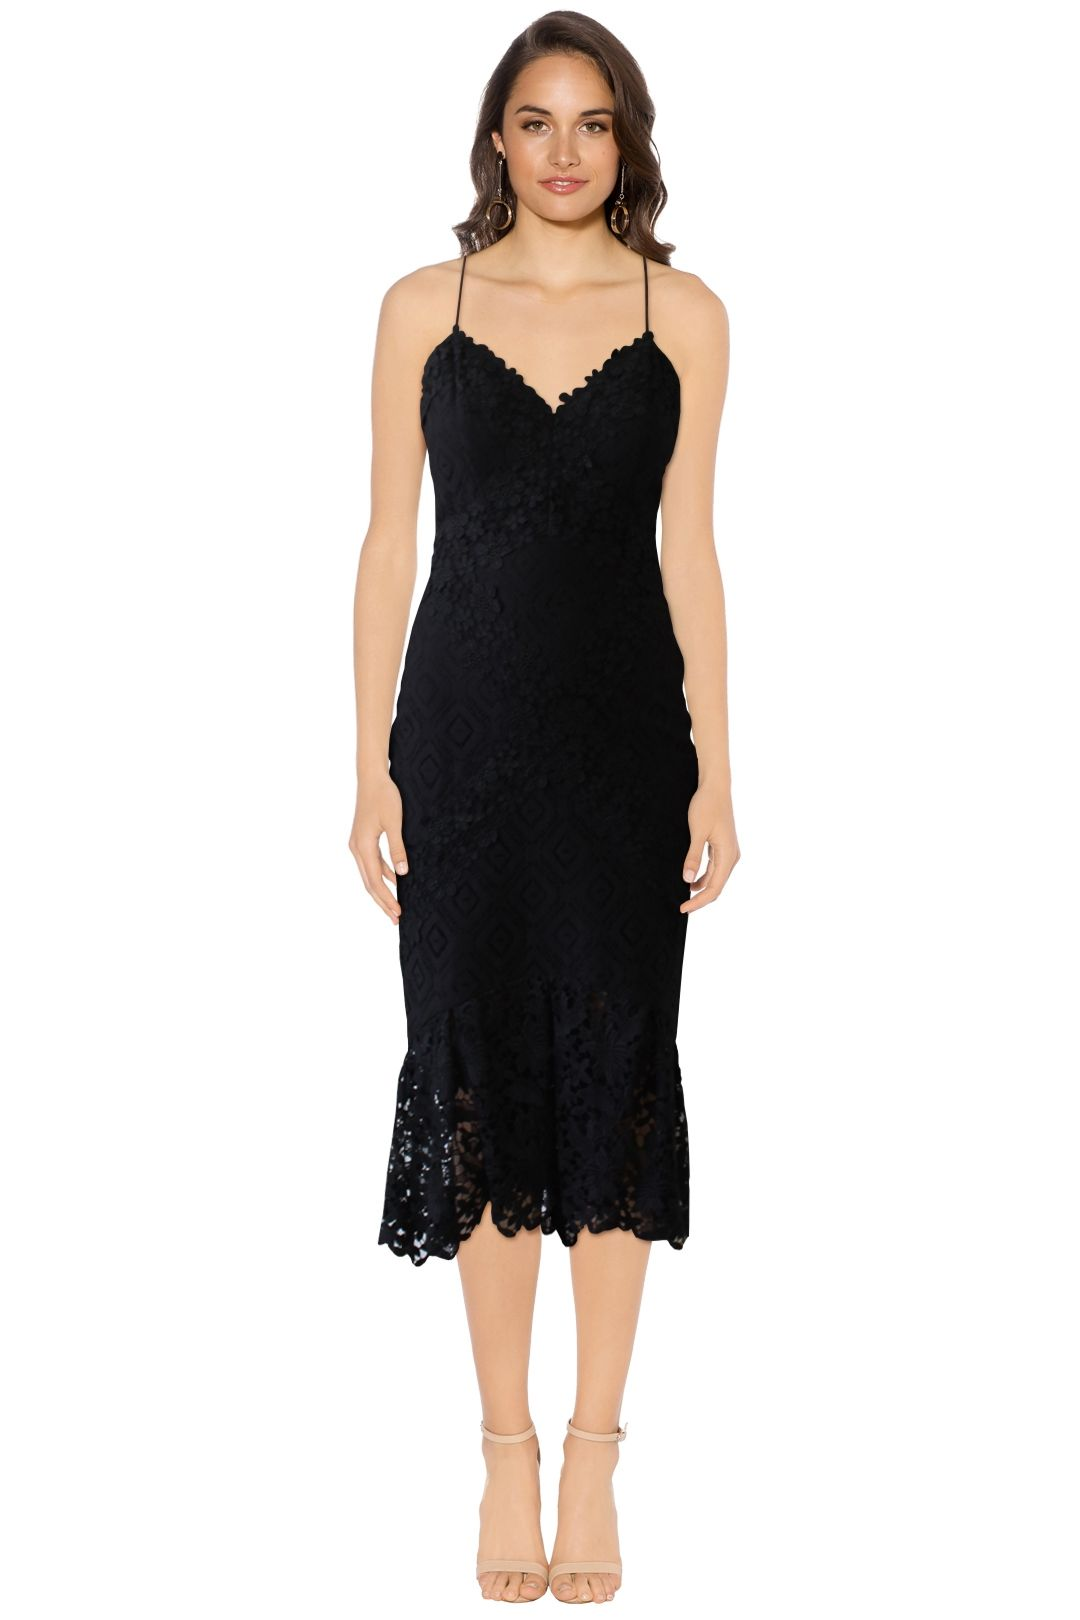 Nicole Miller - Leila Lace Combo Dress - Black - Front